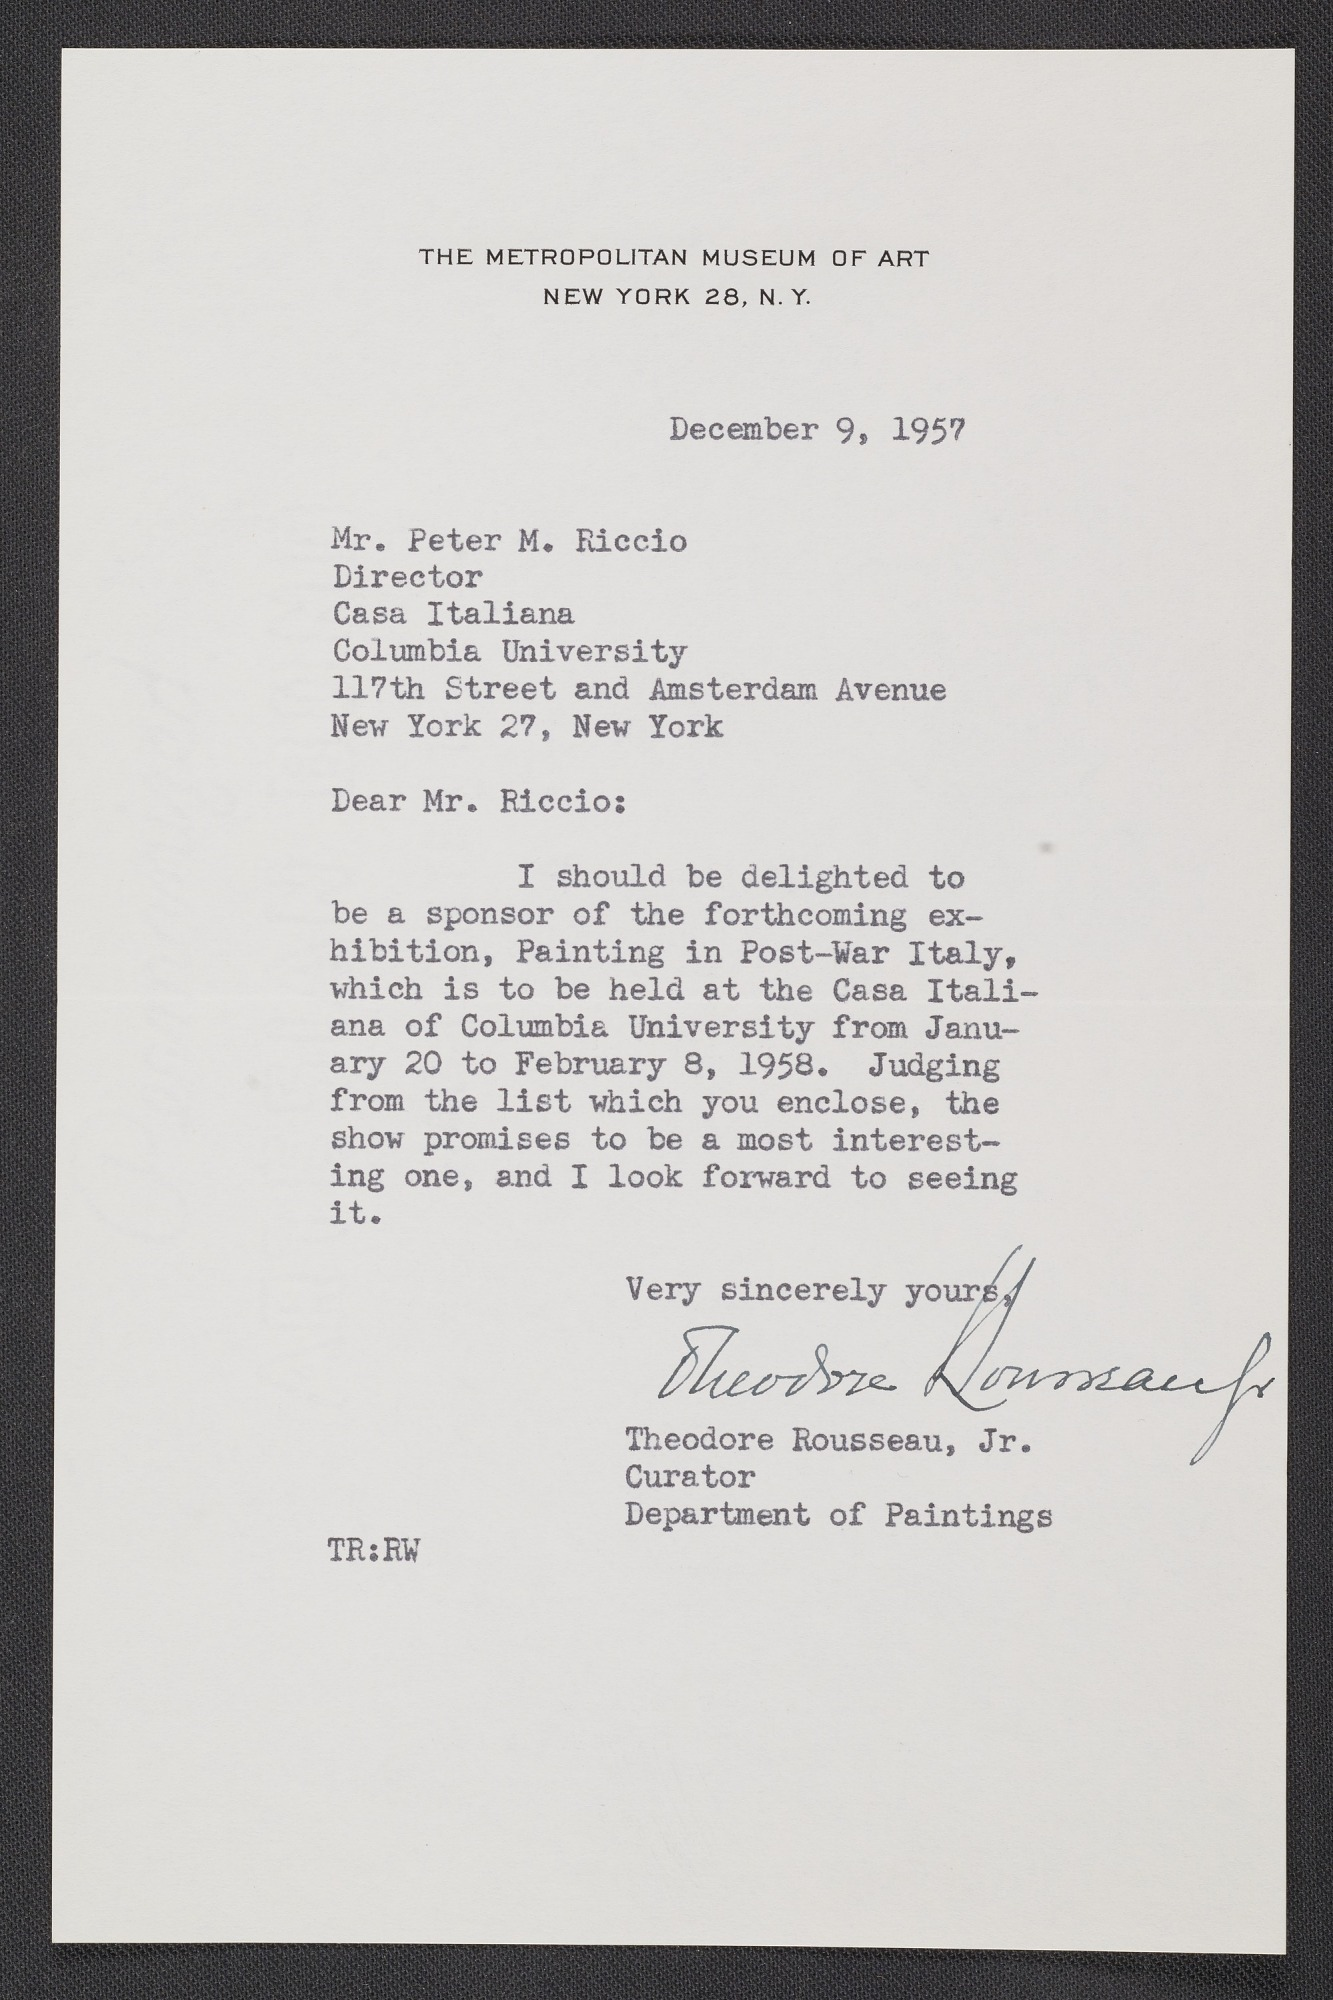 Resources letter from theodore rousseau jr curator in the resources letter from theodore rousseau jr curator in the department of paintings at the metropolitan museum of art to peter m riccio at columbia thecheapjerseys Image collections